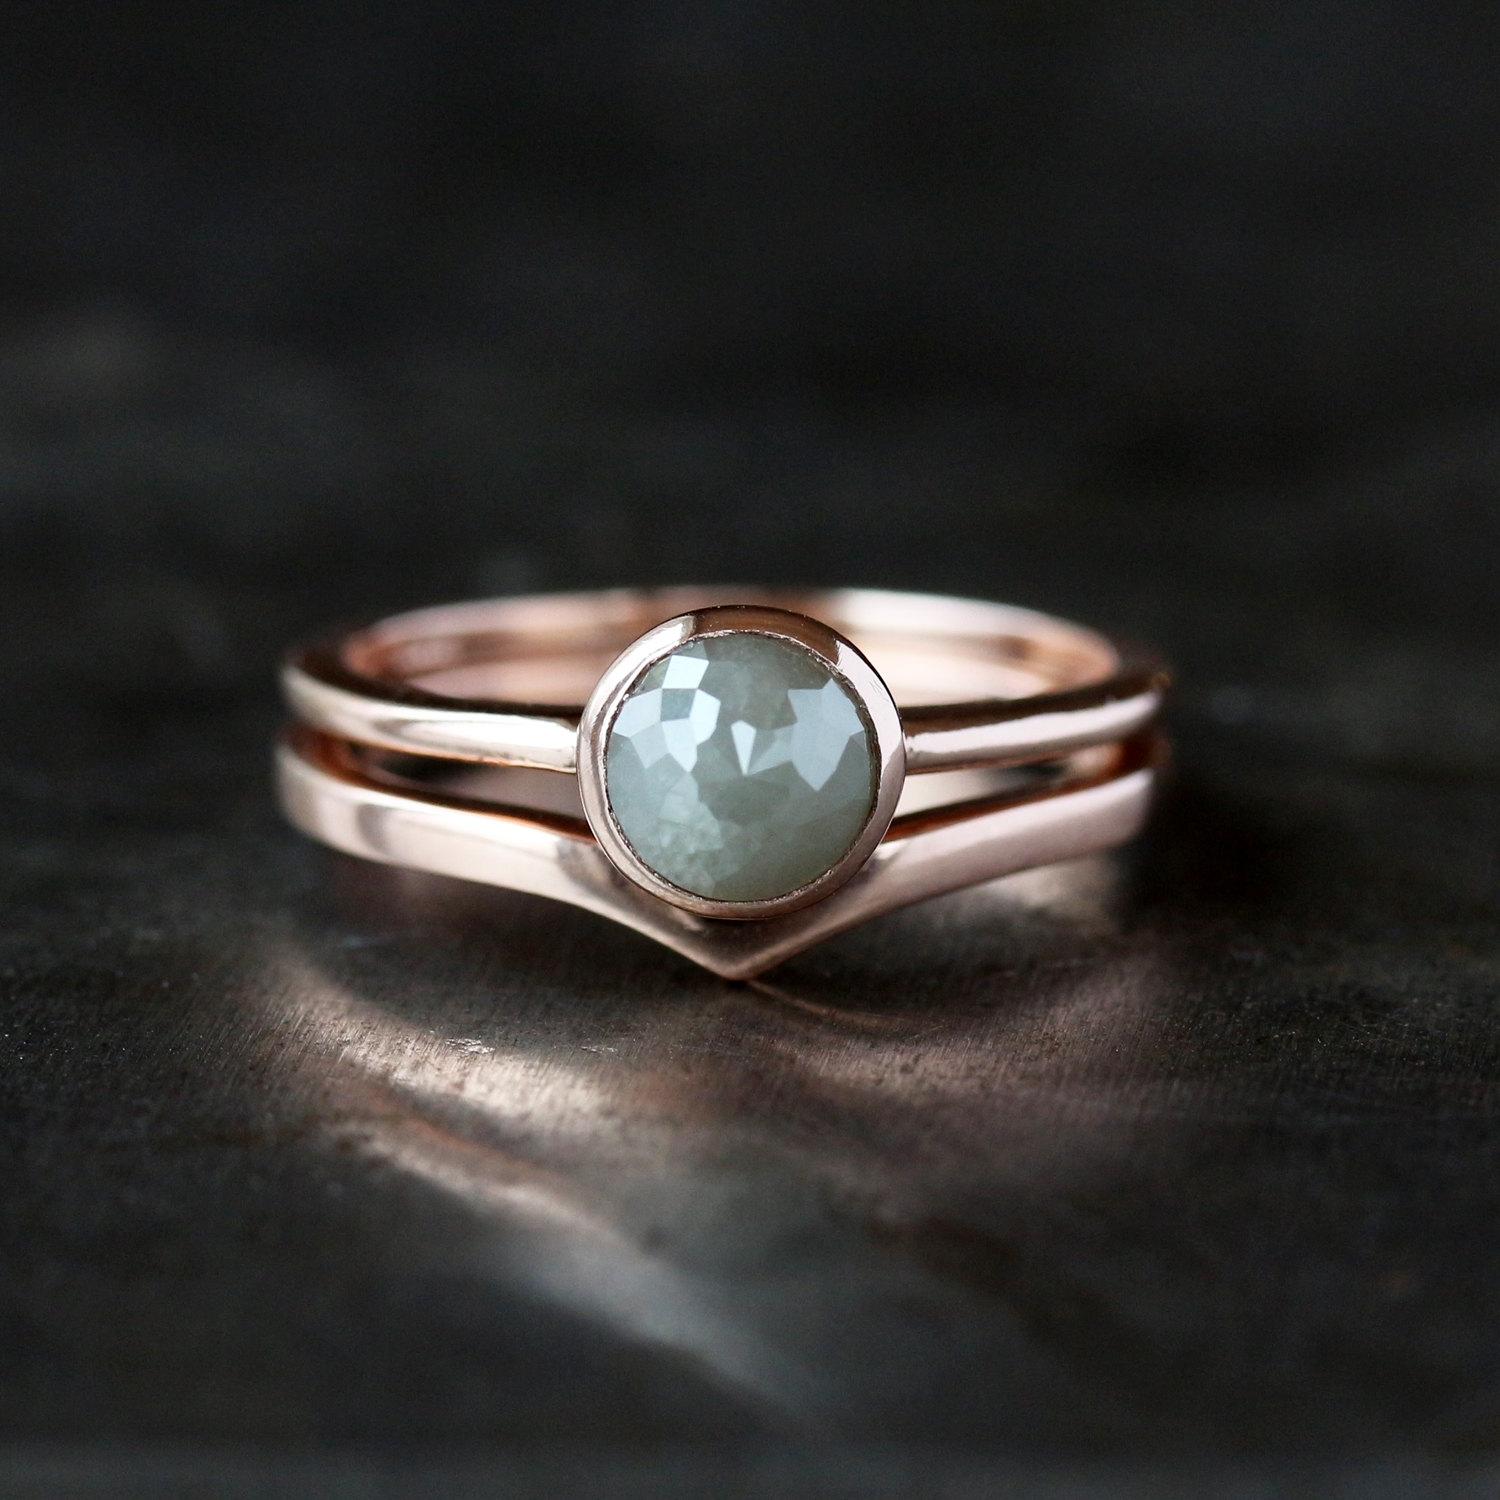 Chevron Wedding Band, 14K Rose Gold Wedding Ring, Contour Band With Regard To Recent Chevron Wedding Rings (View 9 of 15)